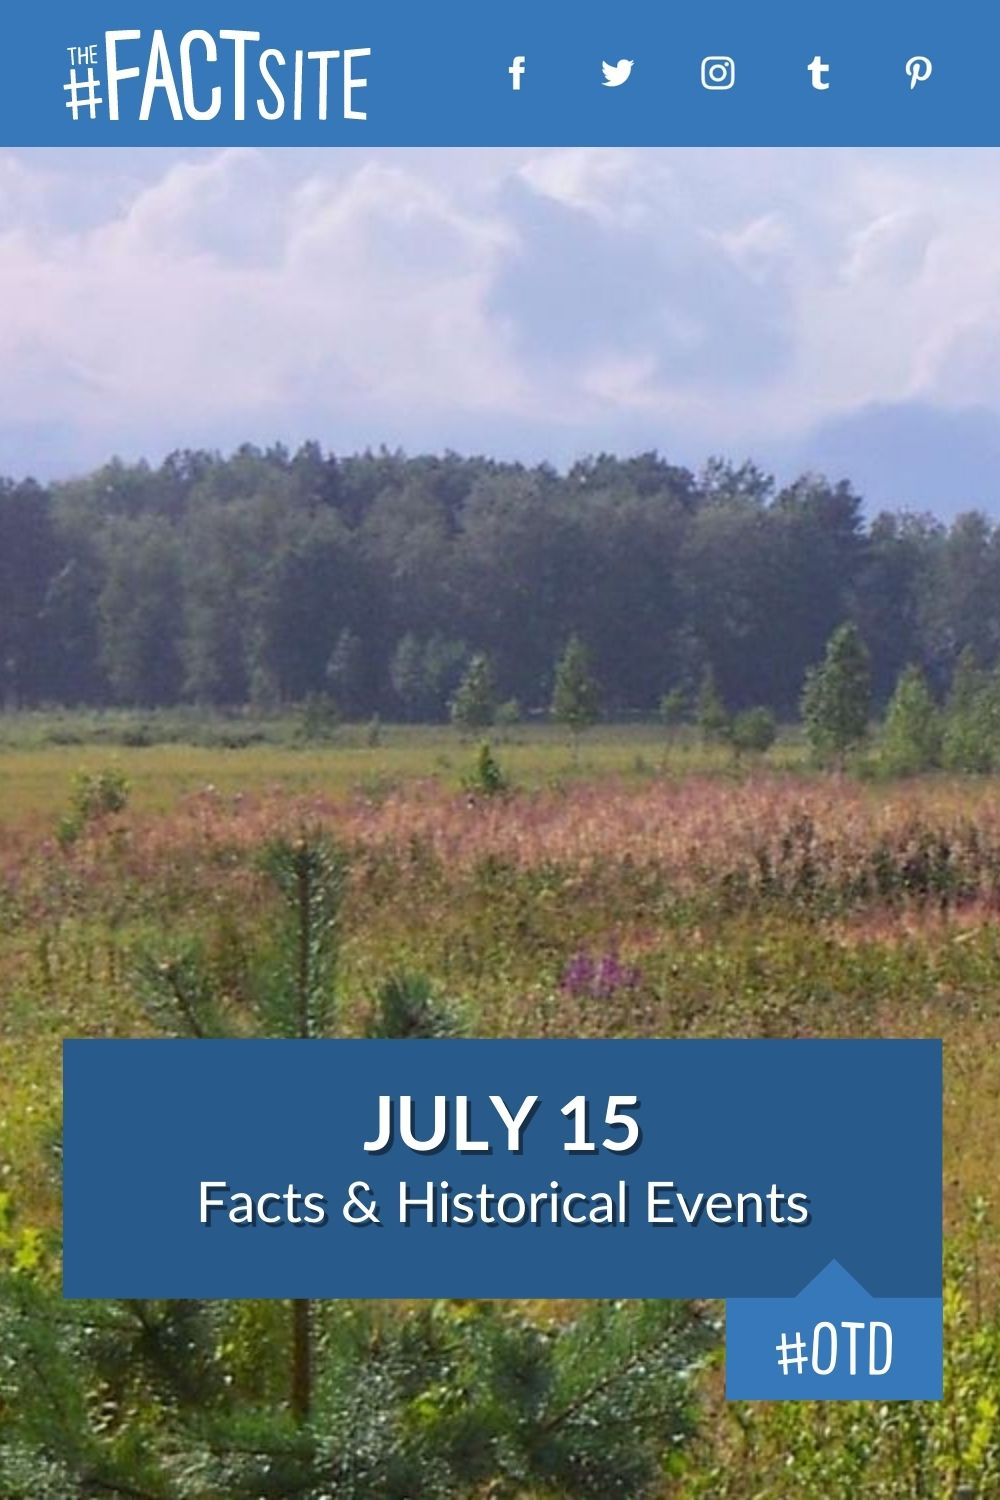 Facts & Historic Events That Happened on July 15